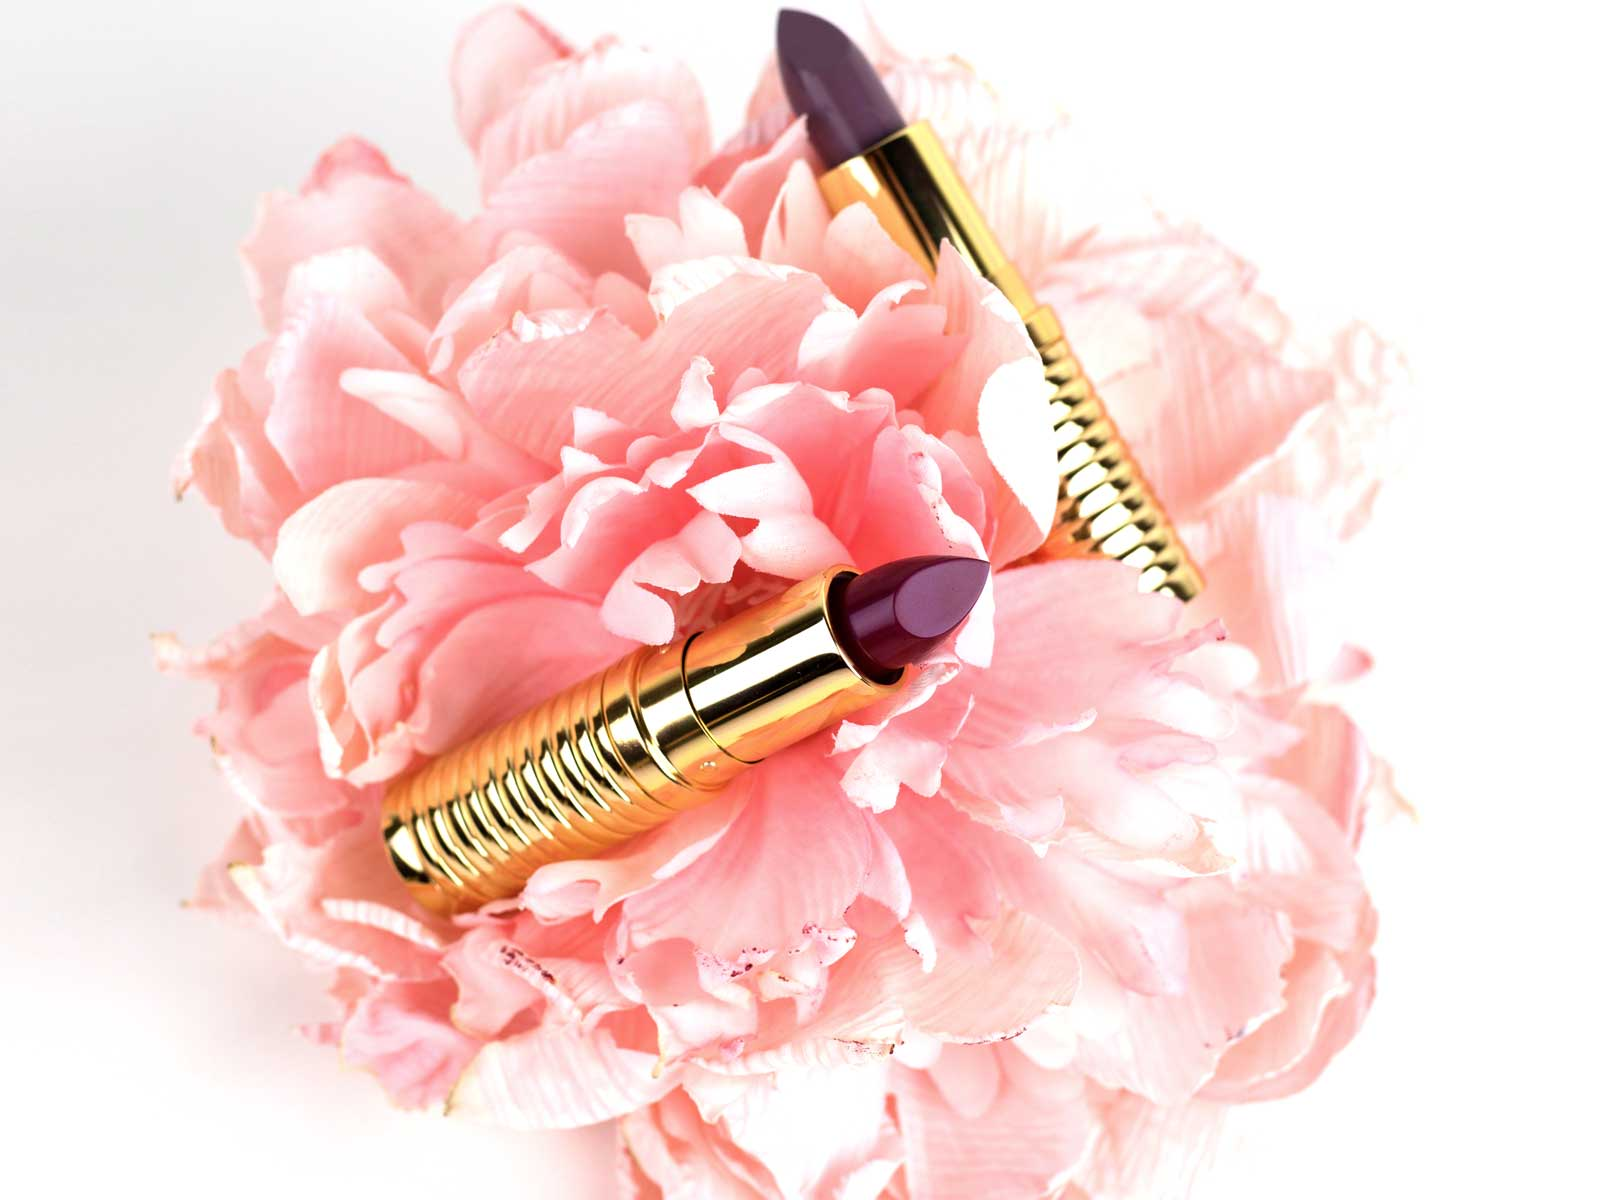 Lipstick in gold tube on Pink Peony Flower